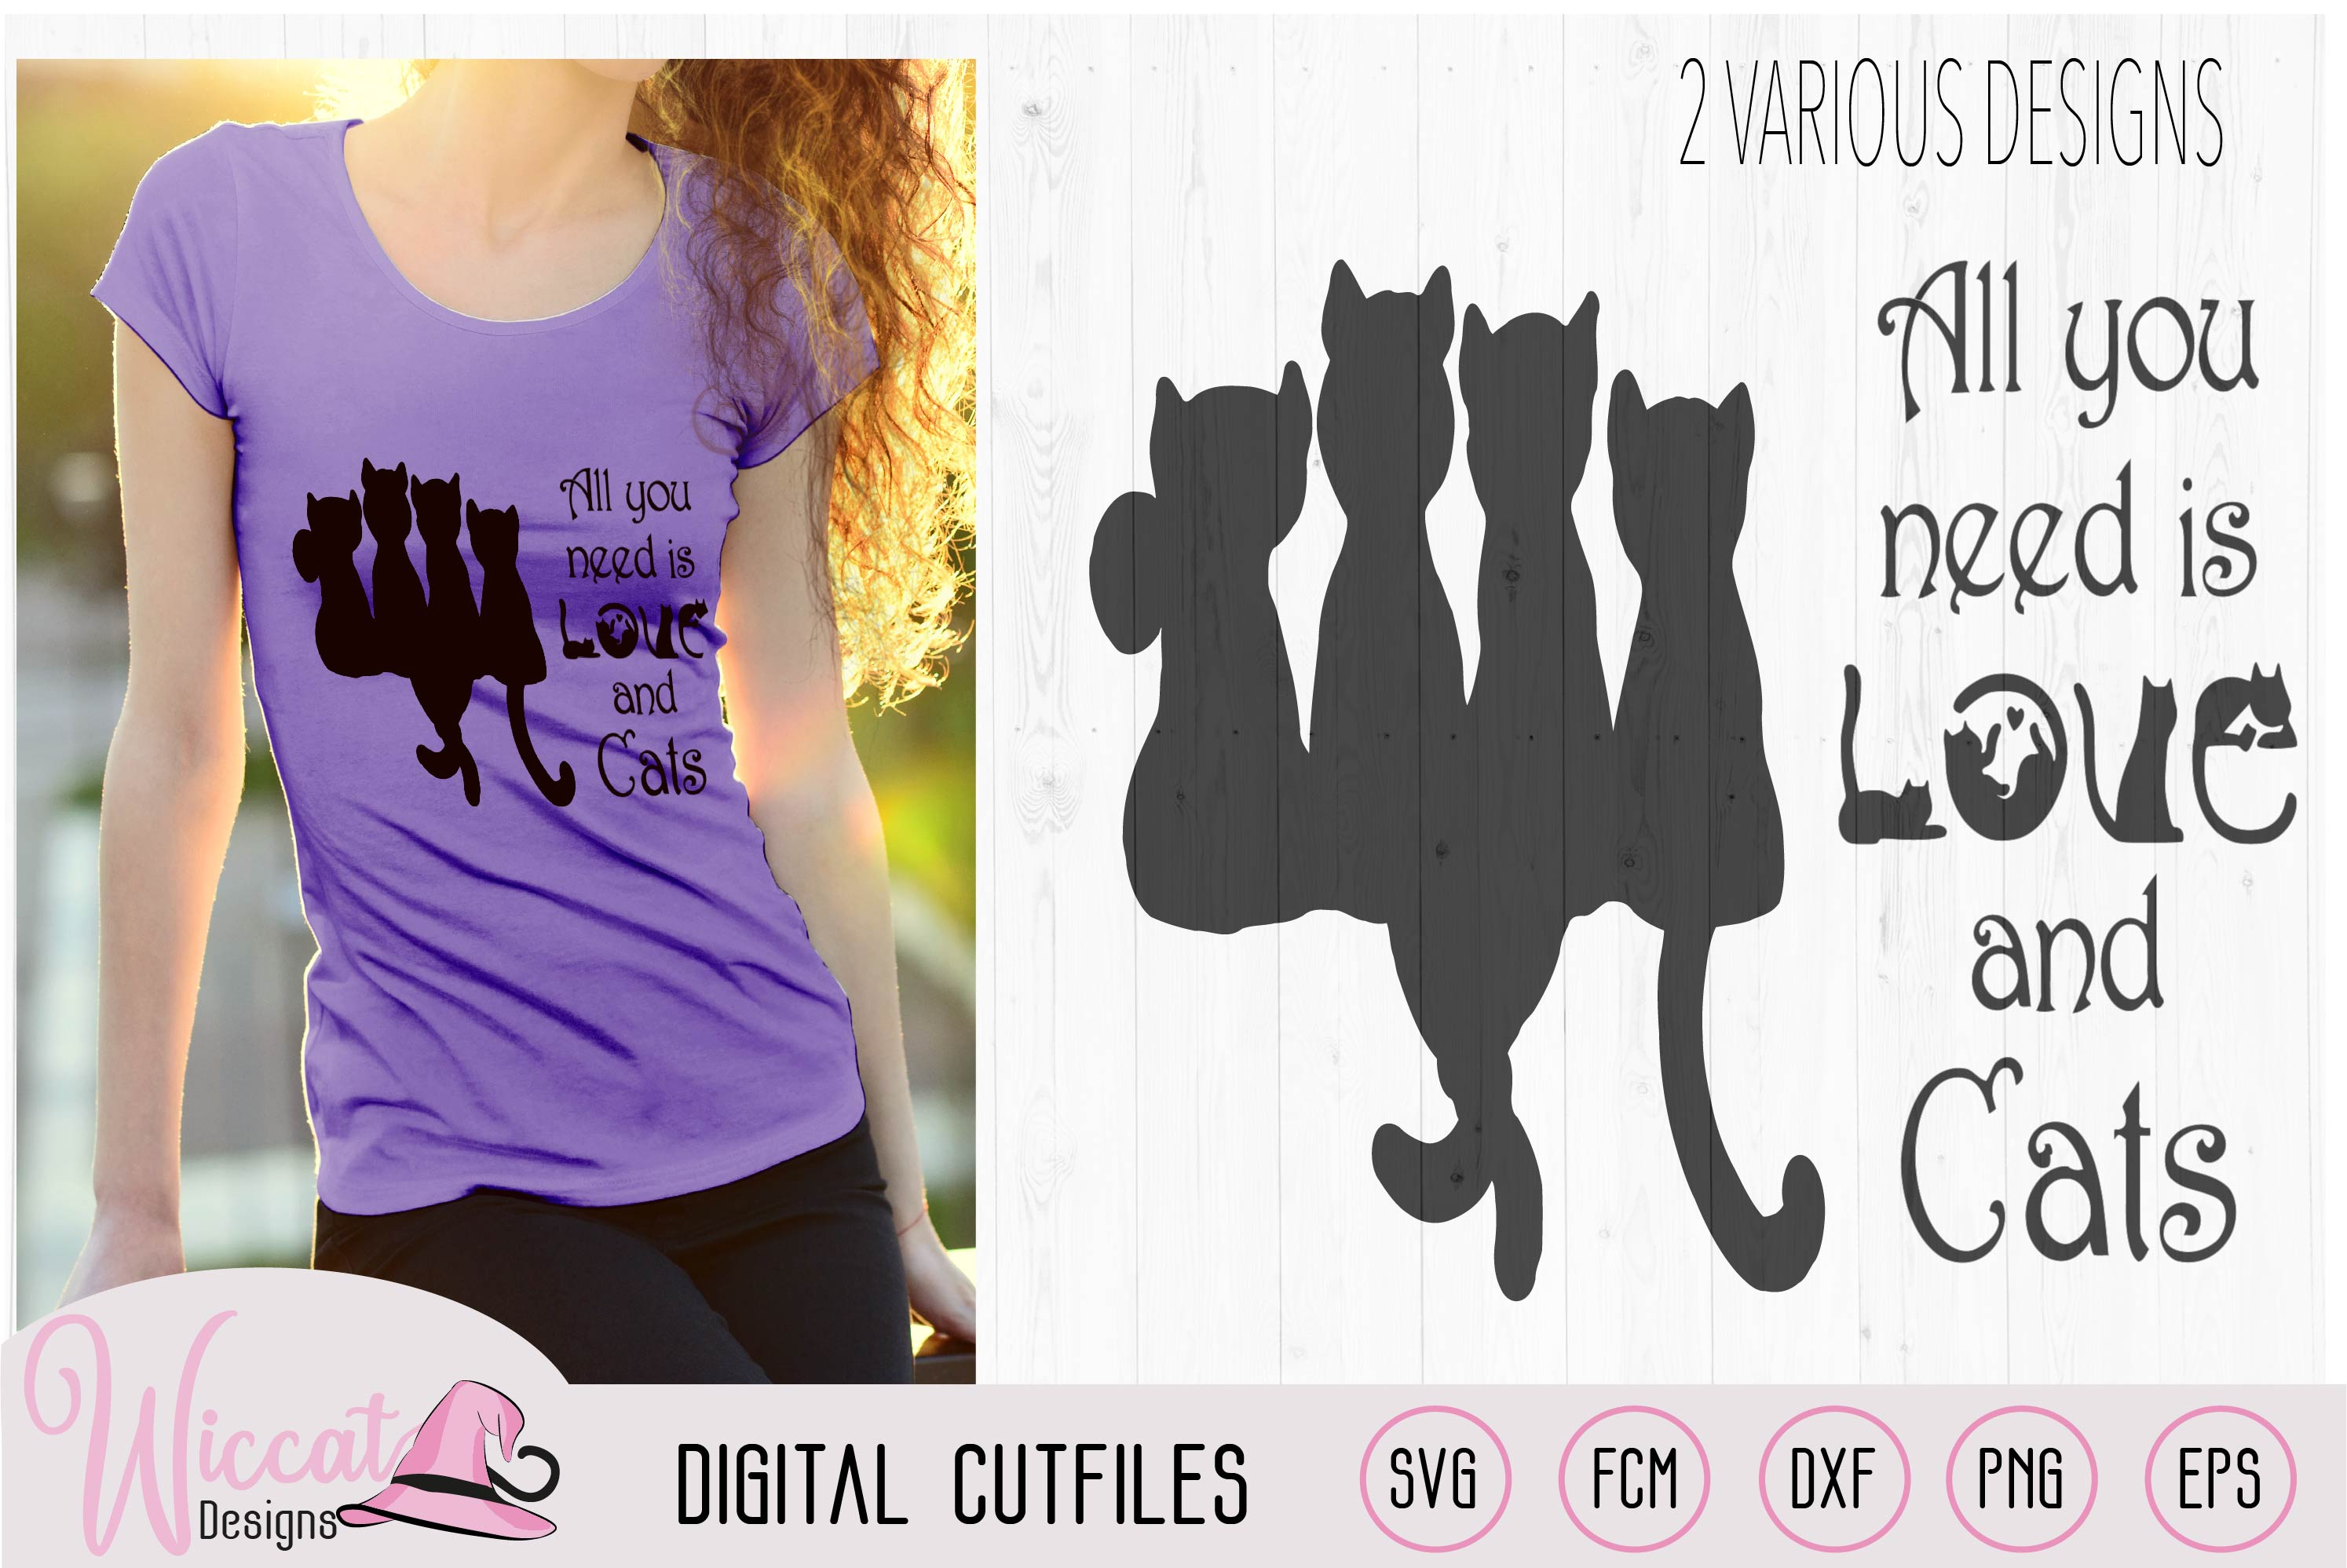 Doodle cats all you need is love, cat quote svg, word art, example image 2